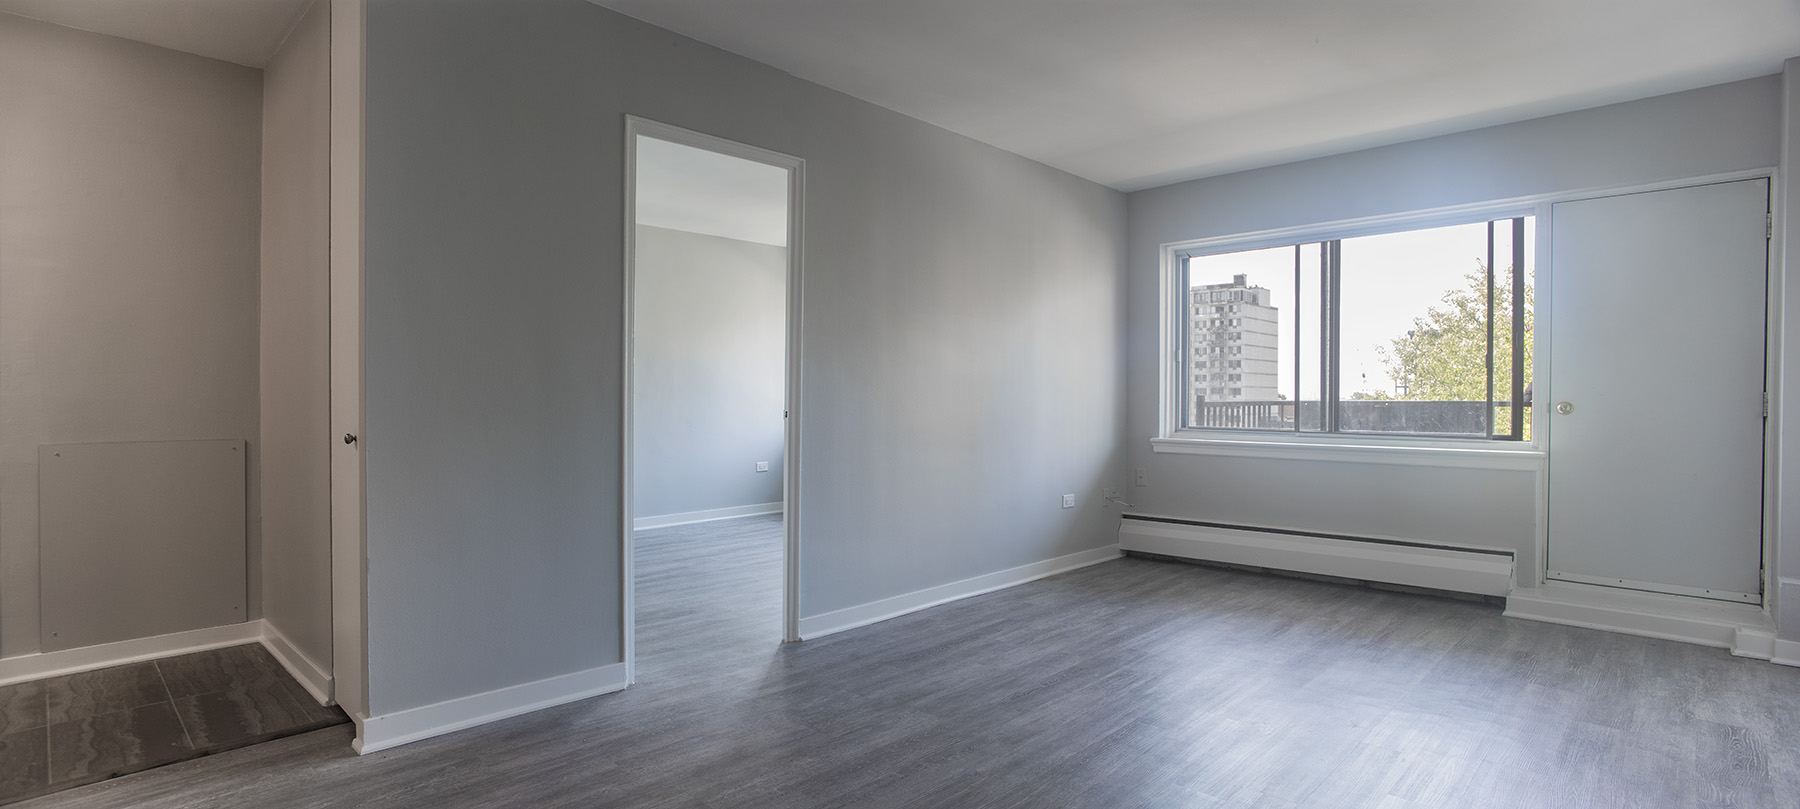 Studio / Bachelor Apartments for rent in Montreal (Downtown) at Le Marco Appartements - Photo 15 - RentQuebecApartments – L401544